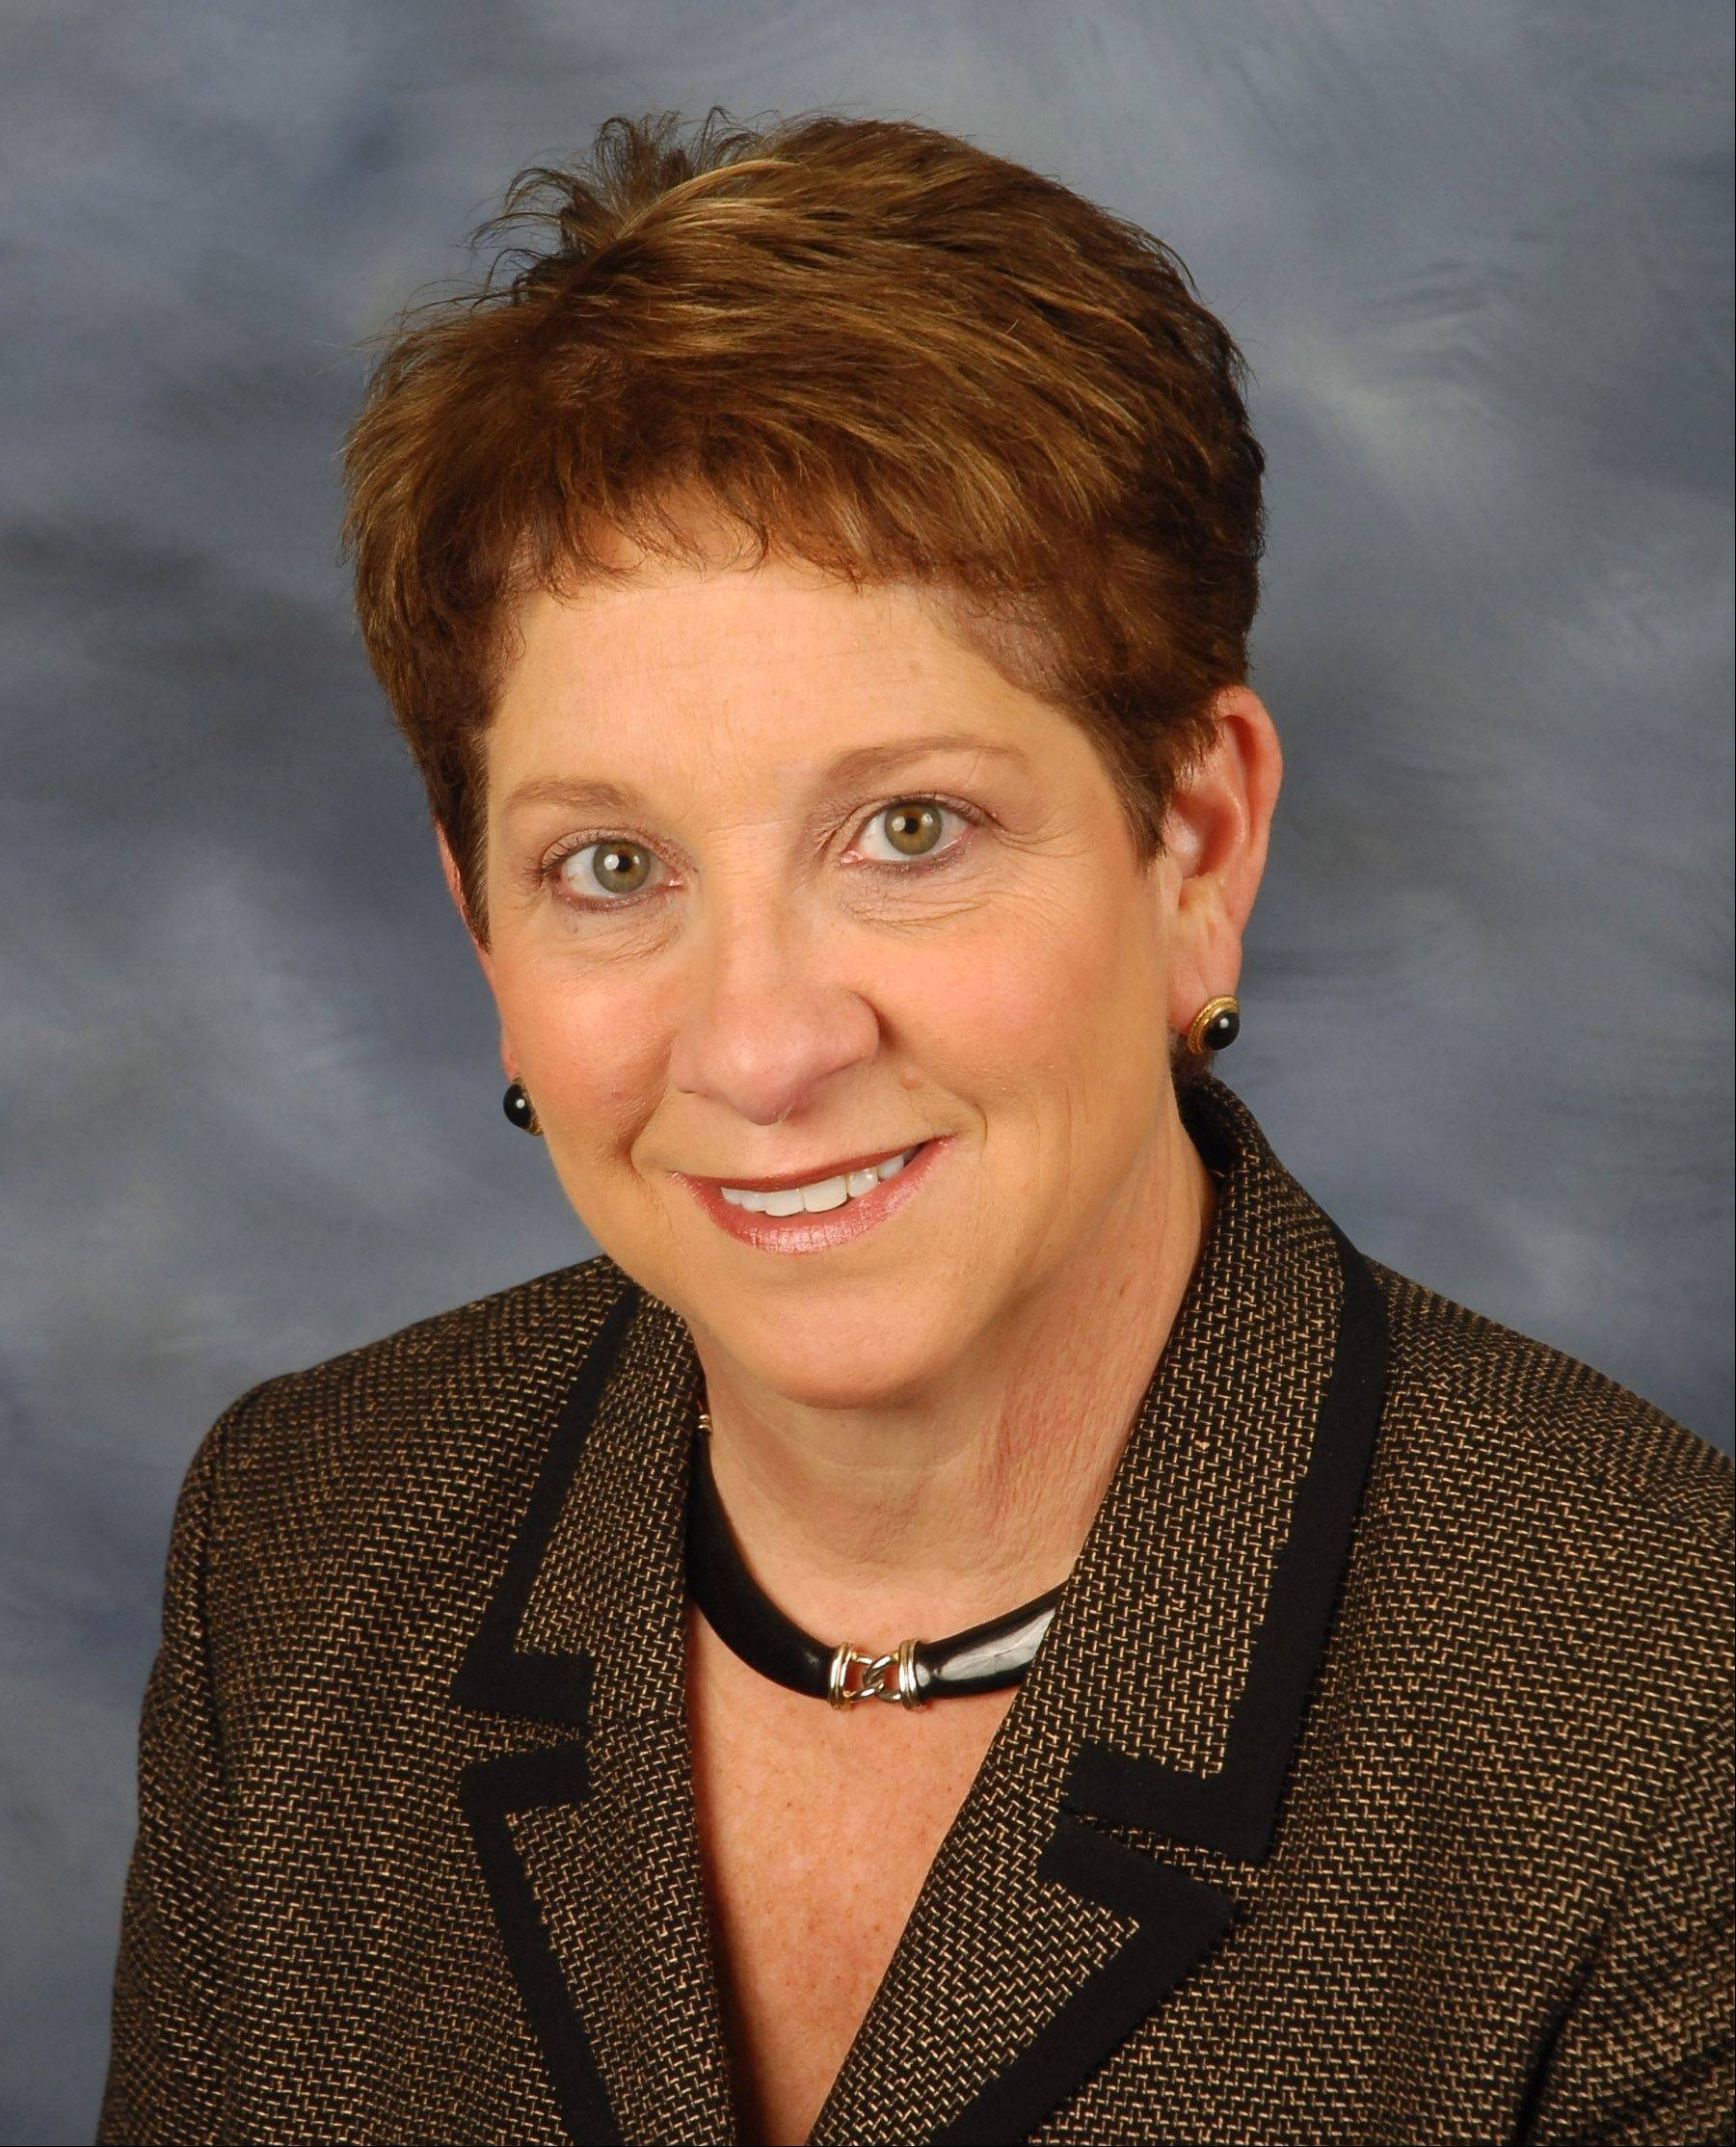 Mundelein High School Superintendent Jody Ware